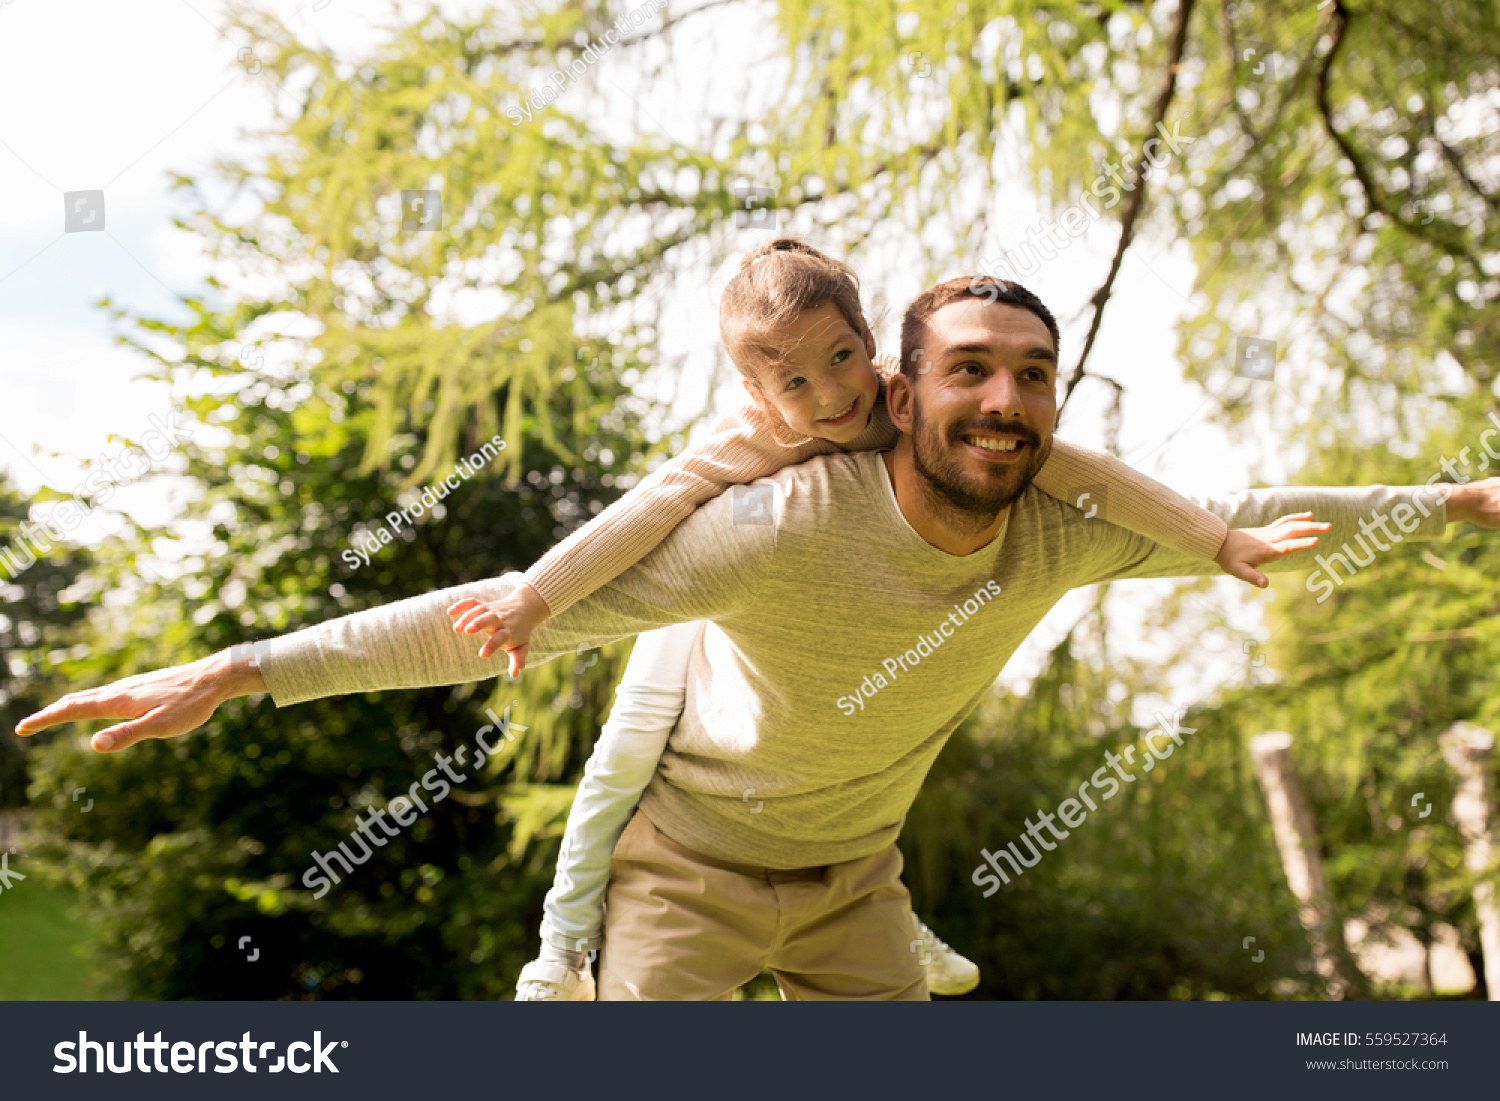 family, parenthood, fatherhood and people concept - happy man and little girl in having fun in summer park #559527364